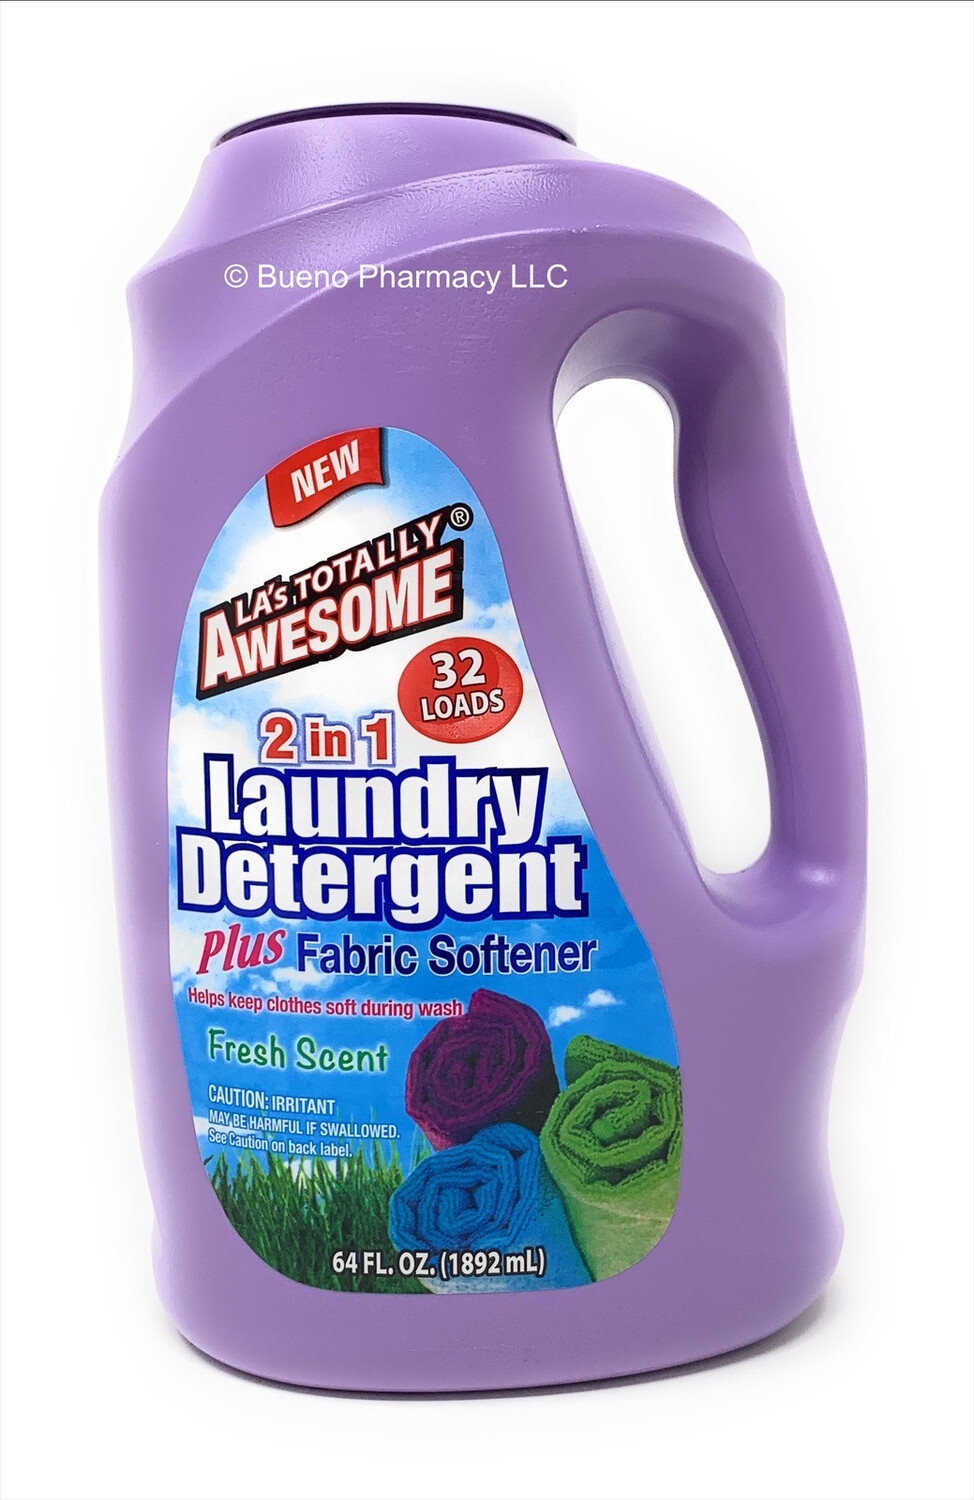 Awesome Laundry Detergent plus Fabric Softener (2 in 1)